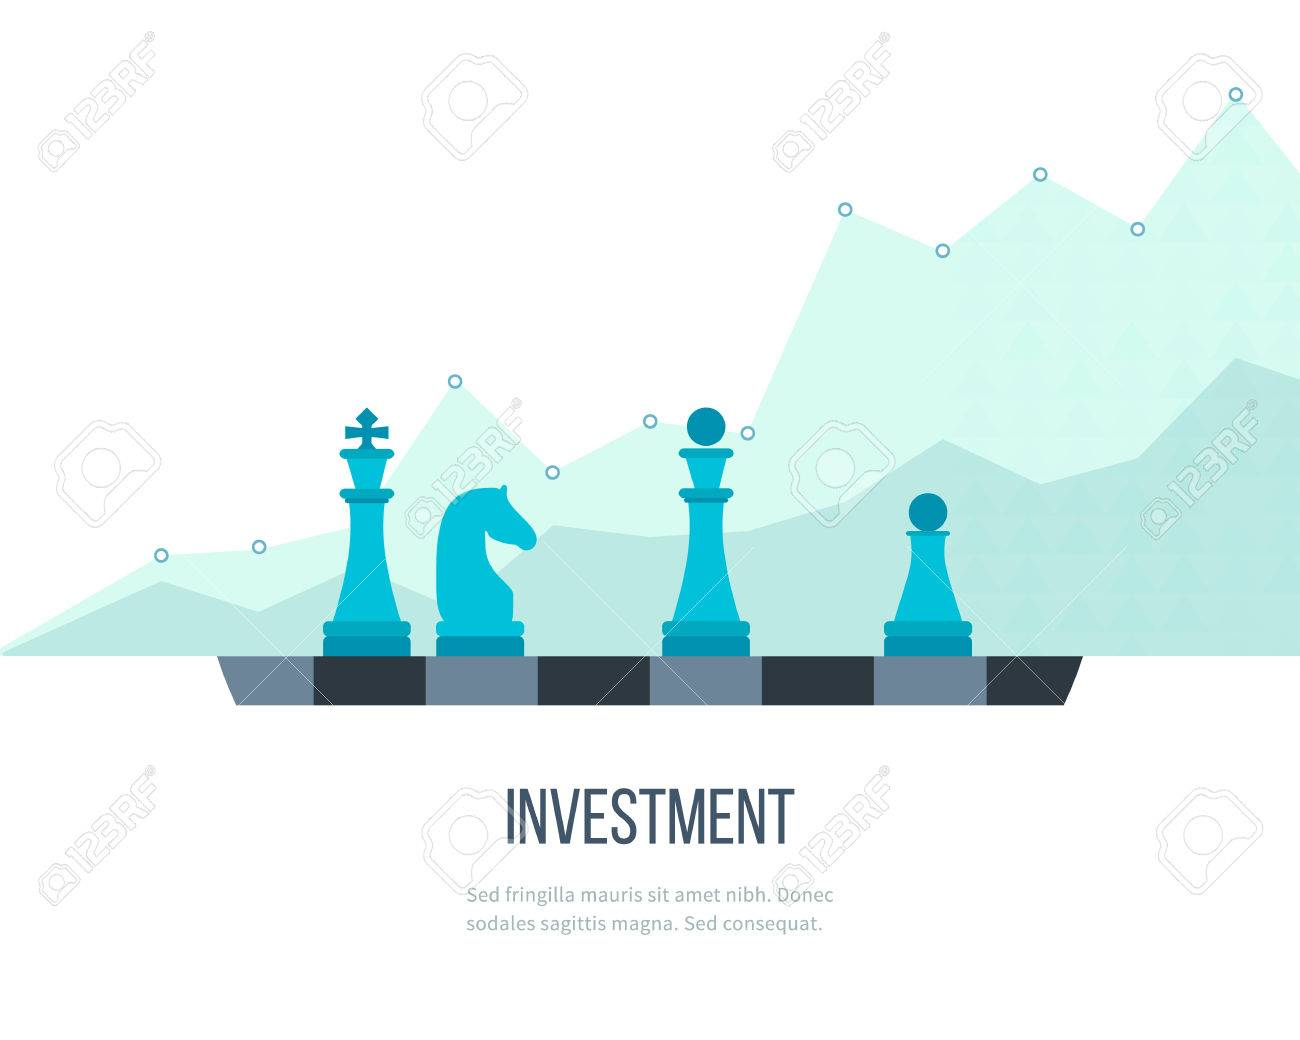 Flat line design concept for investment, finance, banking, market data analytics, strategic management. Strategy for successful business. Investment growth. Investment business. Investment management. - 50554204